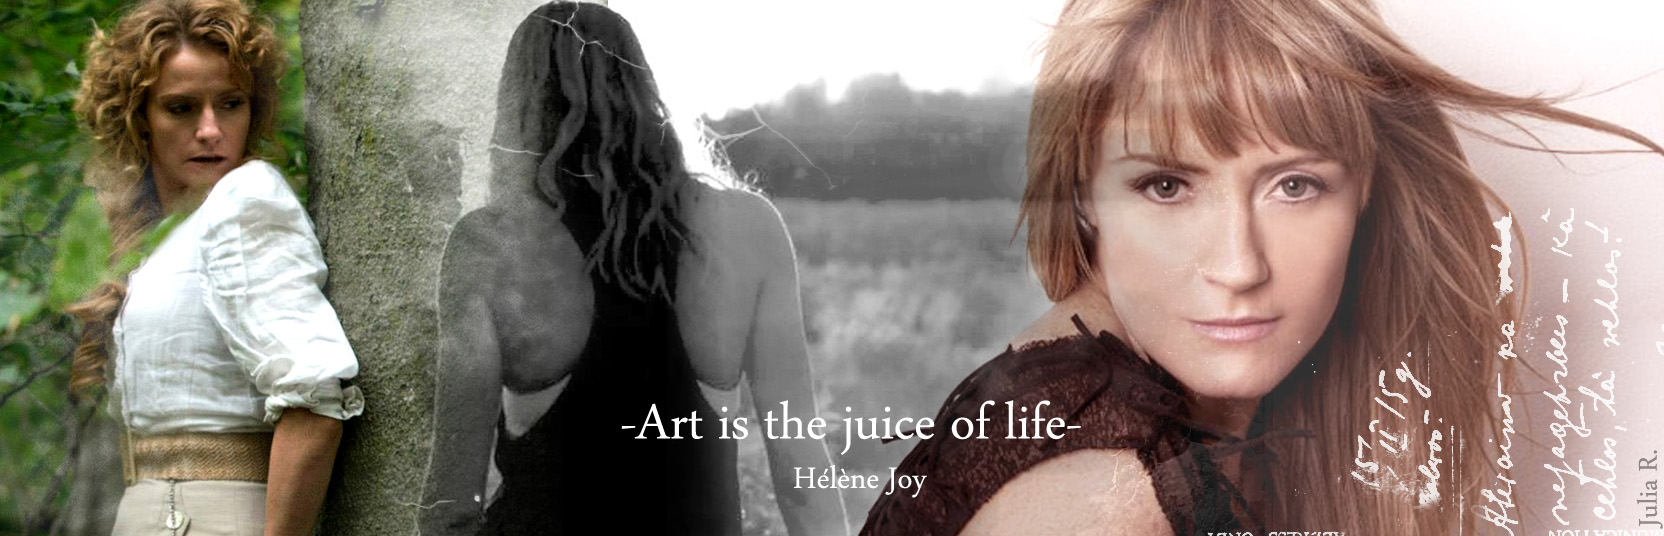 -Art is the juice of life-